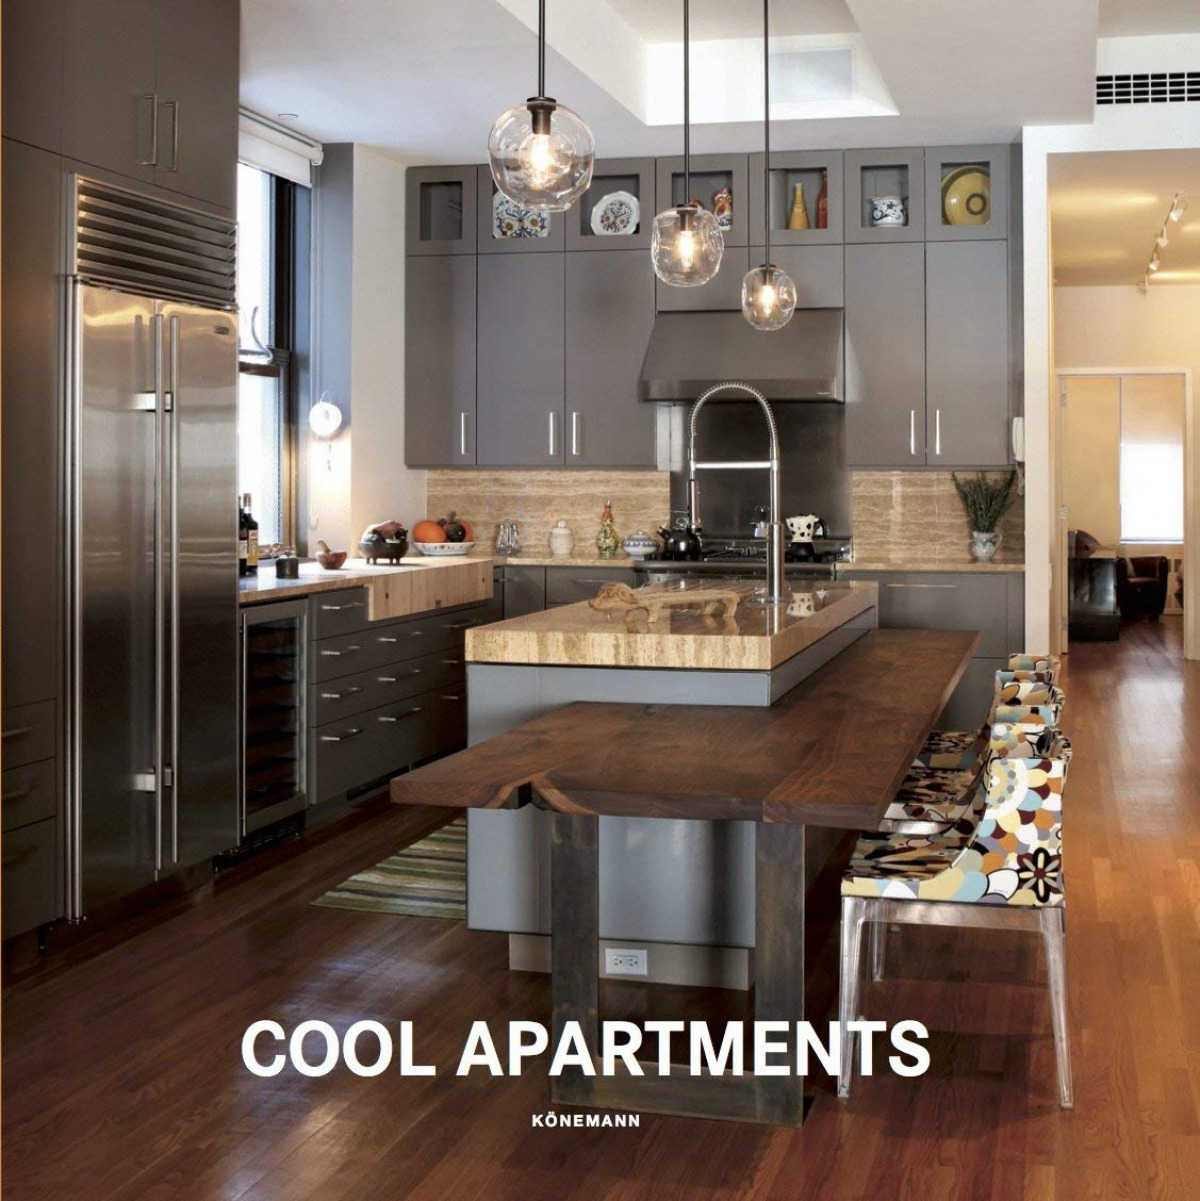 COOL APARTMENTS 9783741920424